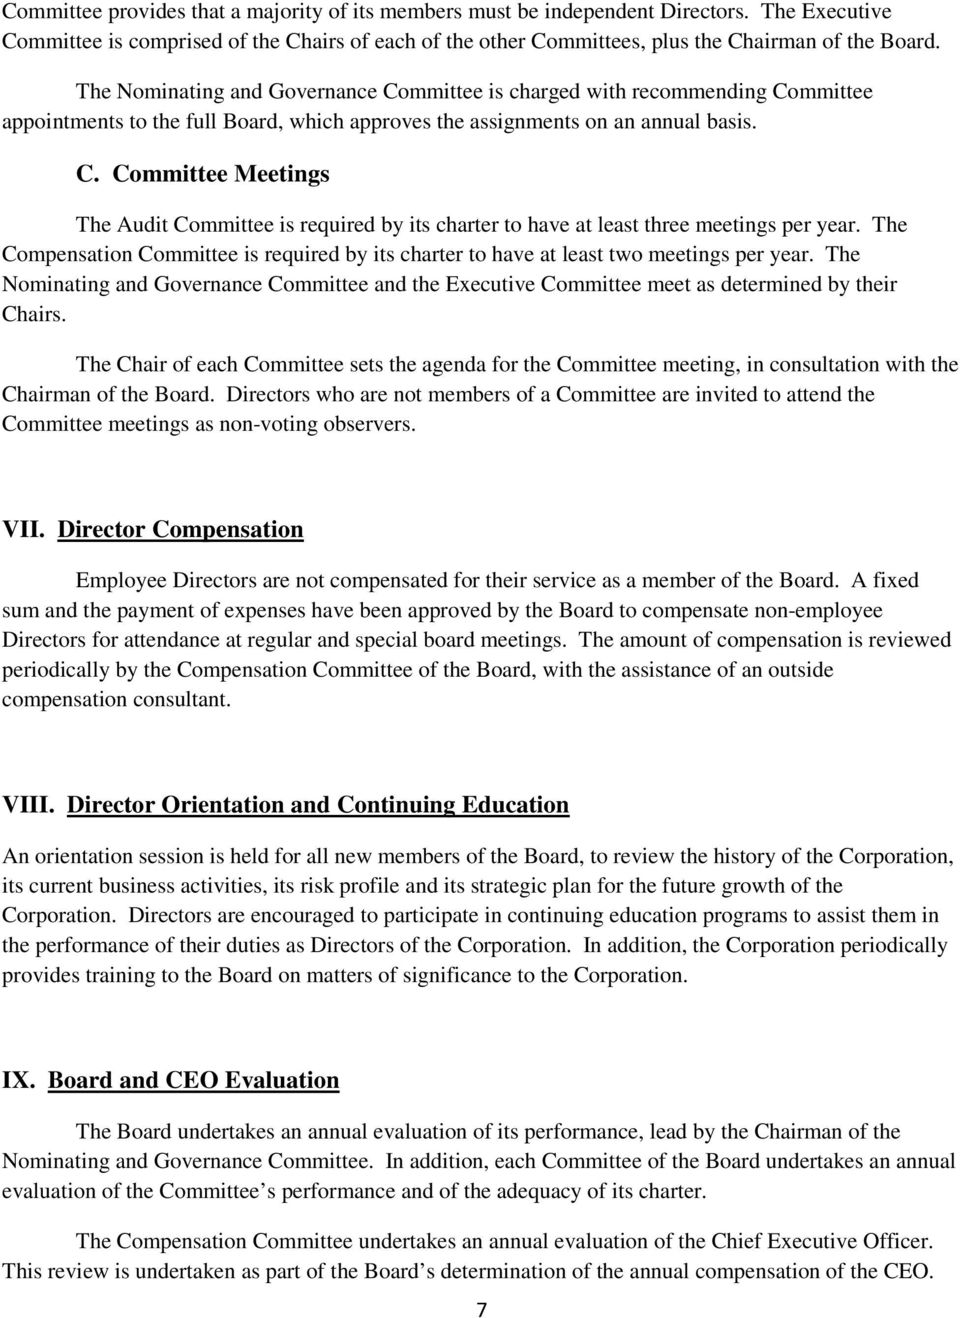 The Compensation Committee is required by its charter to have at least two meetings per year. The Nominating and Governance Committee and the Executive Committee meet as determined by their Chairs.